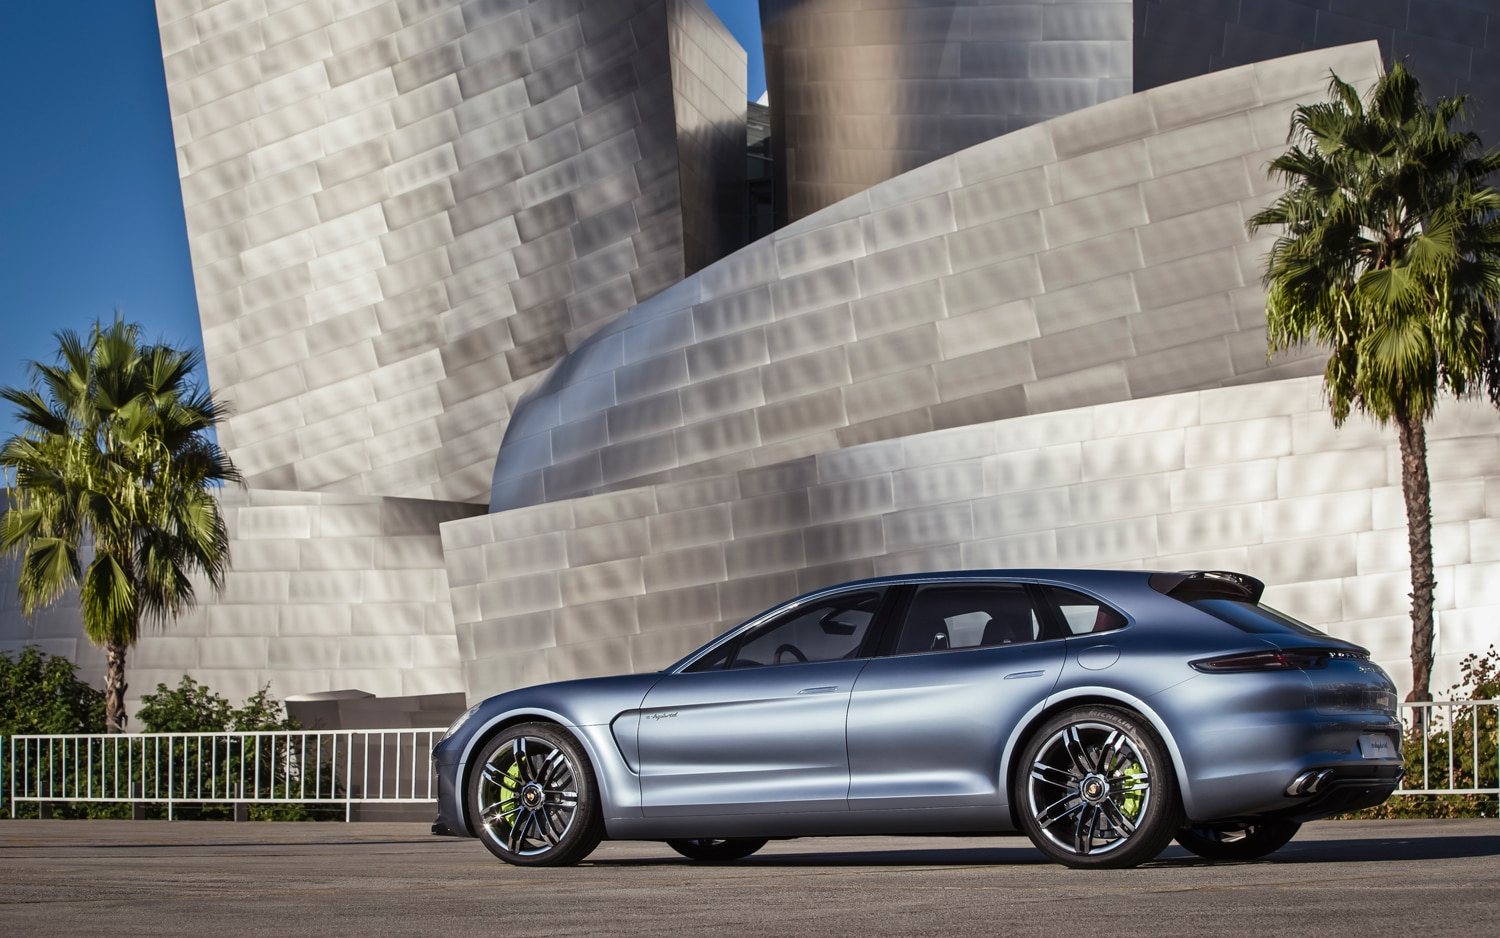 Feature flick porsche panamera sport turismo hits the streets christian seabaugh sciox Choice Image